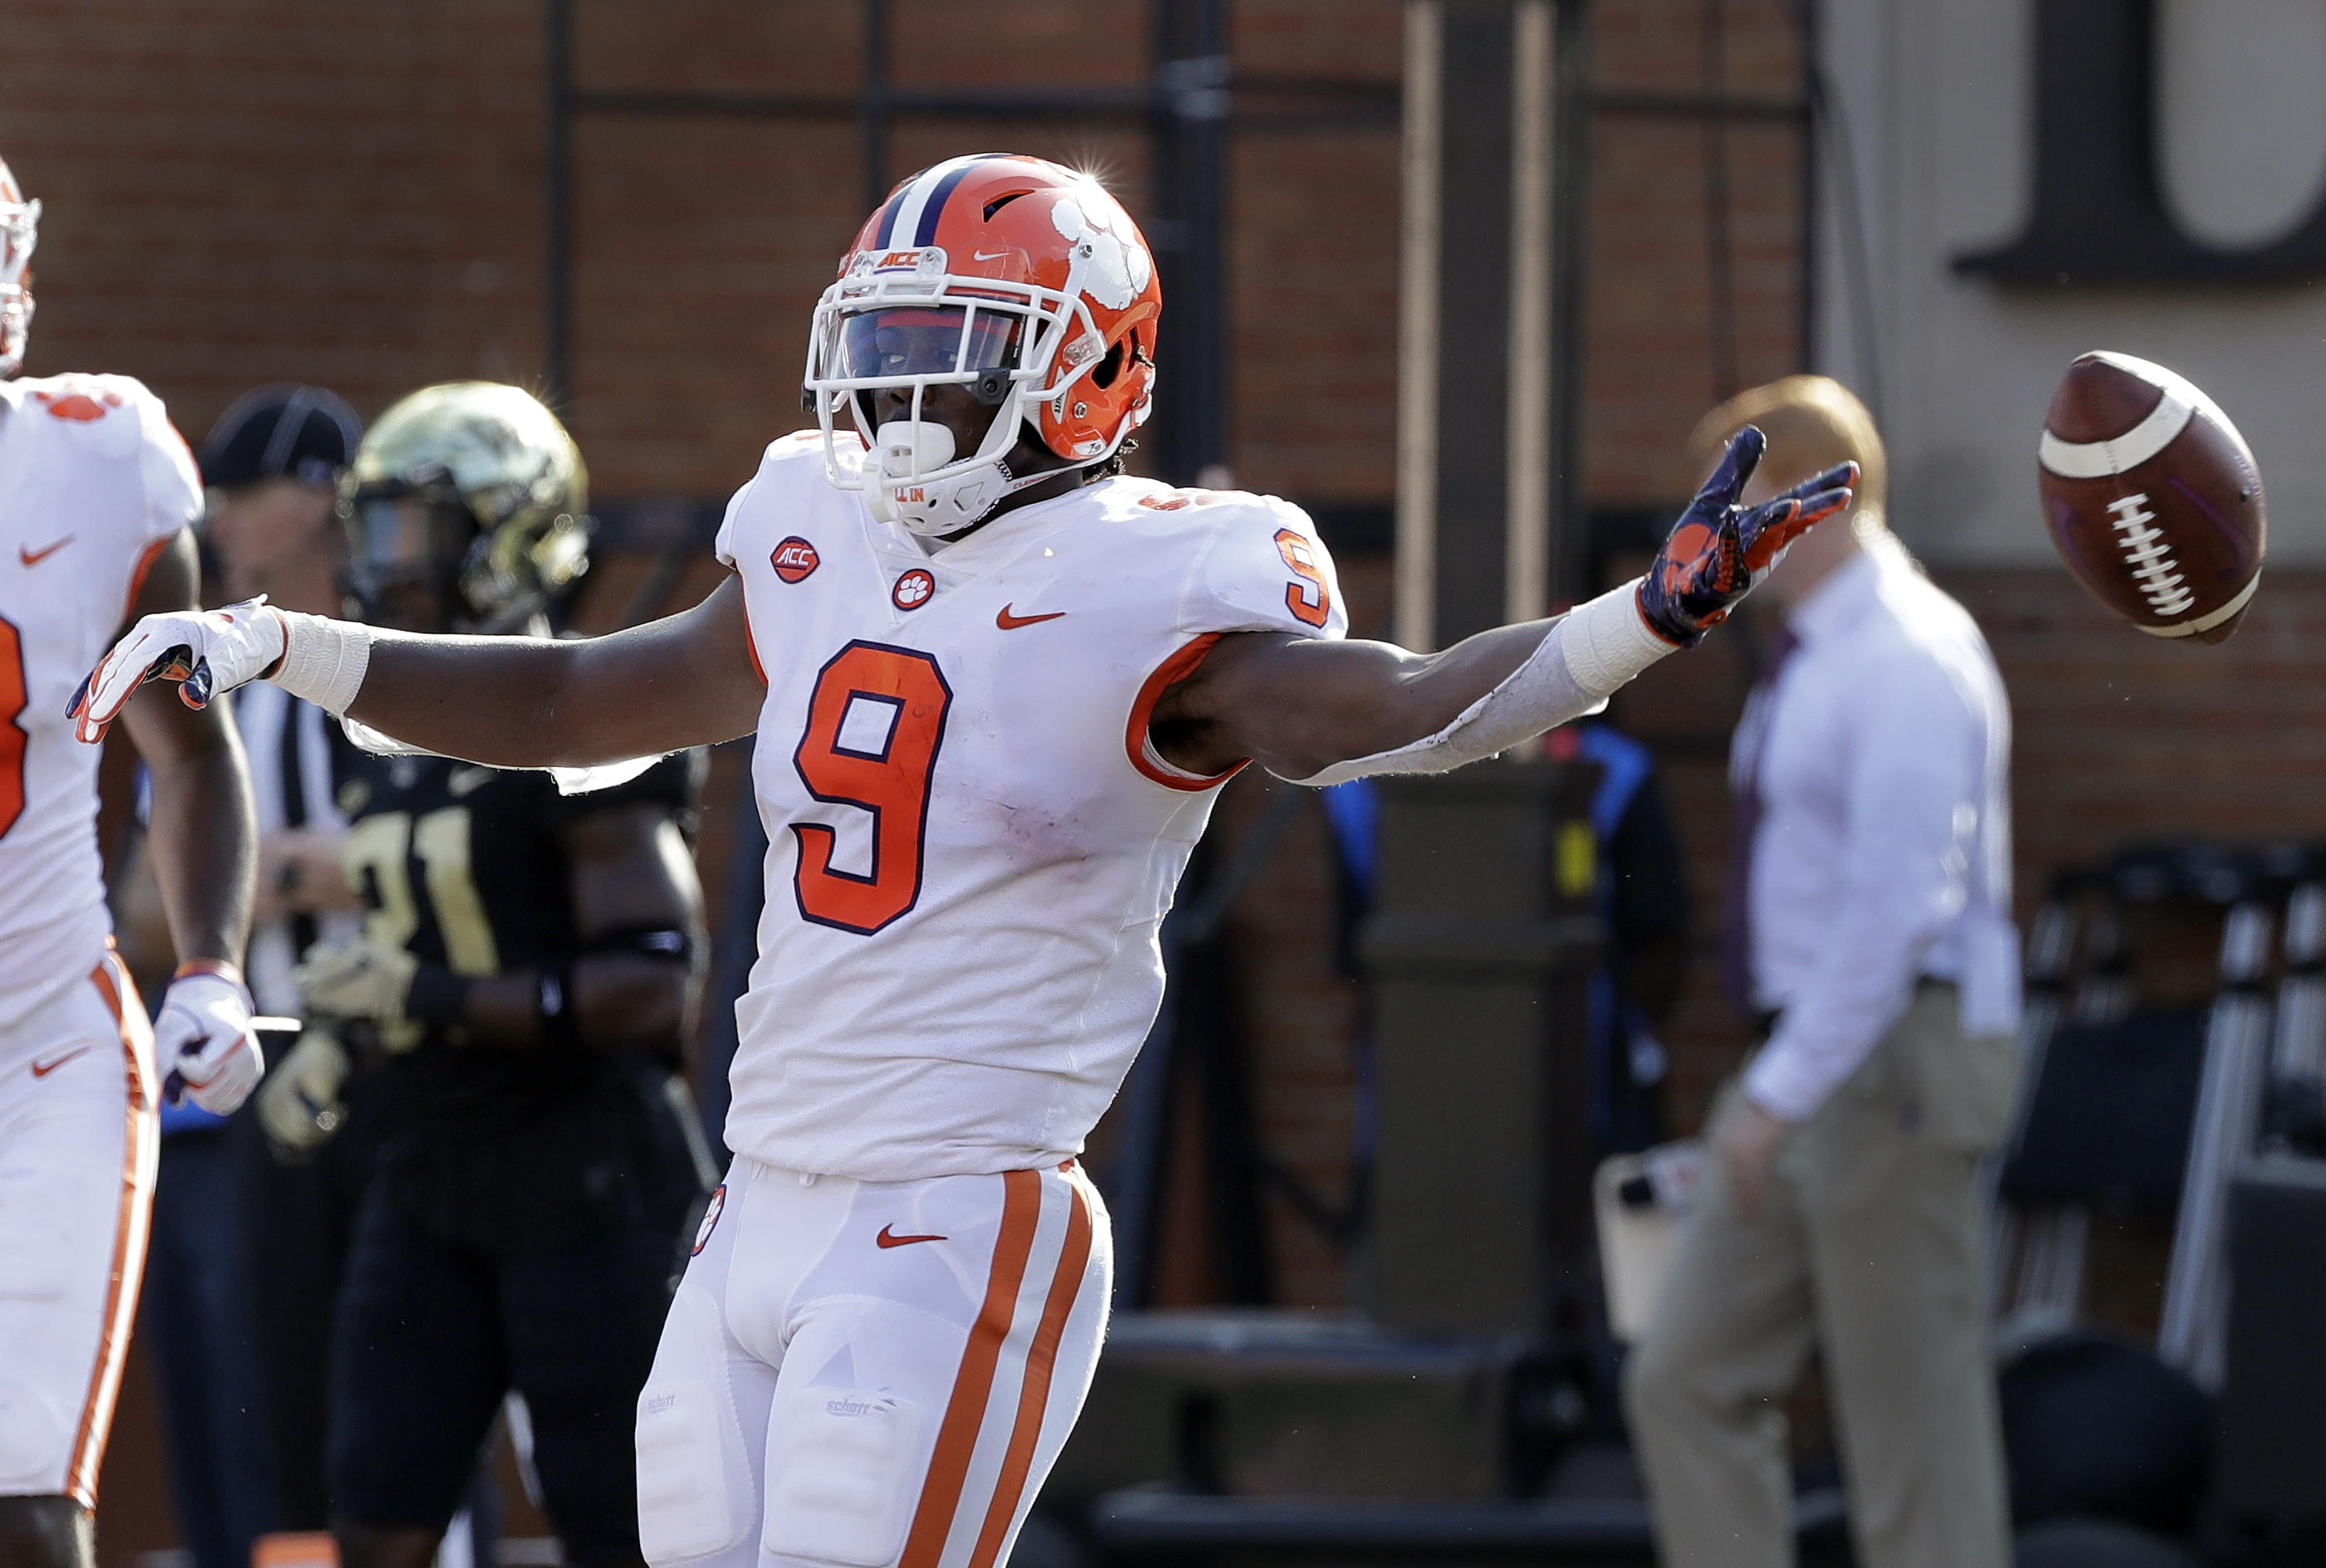 Etienne leads No. 4 Clemson past Wake Forest, 63-3